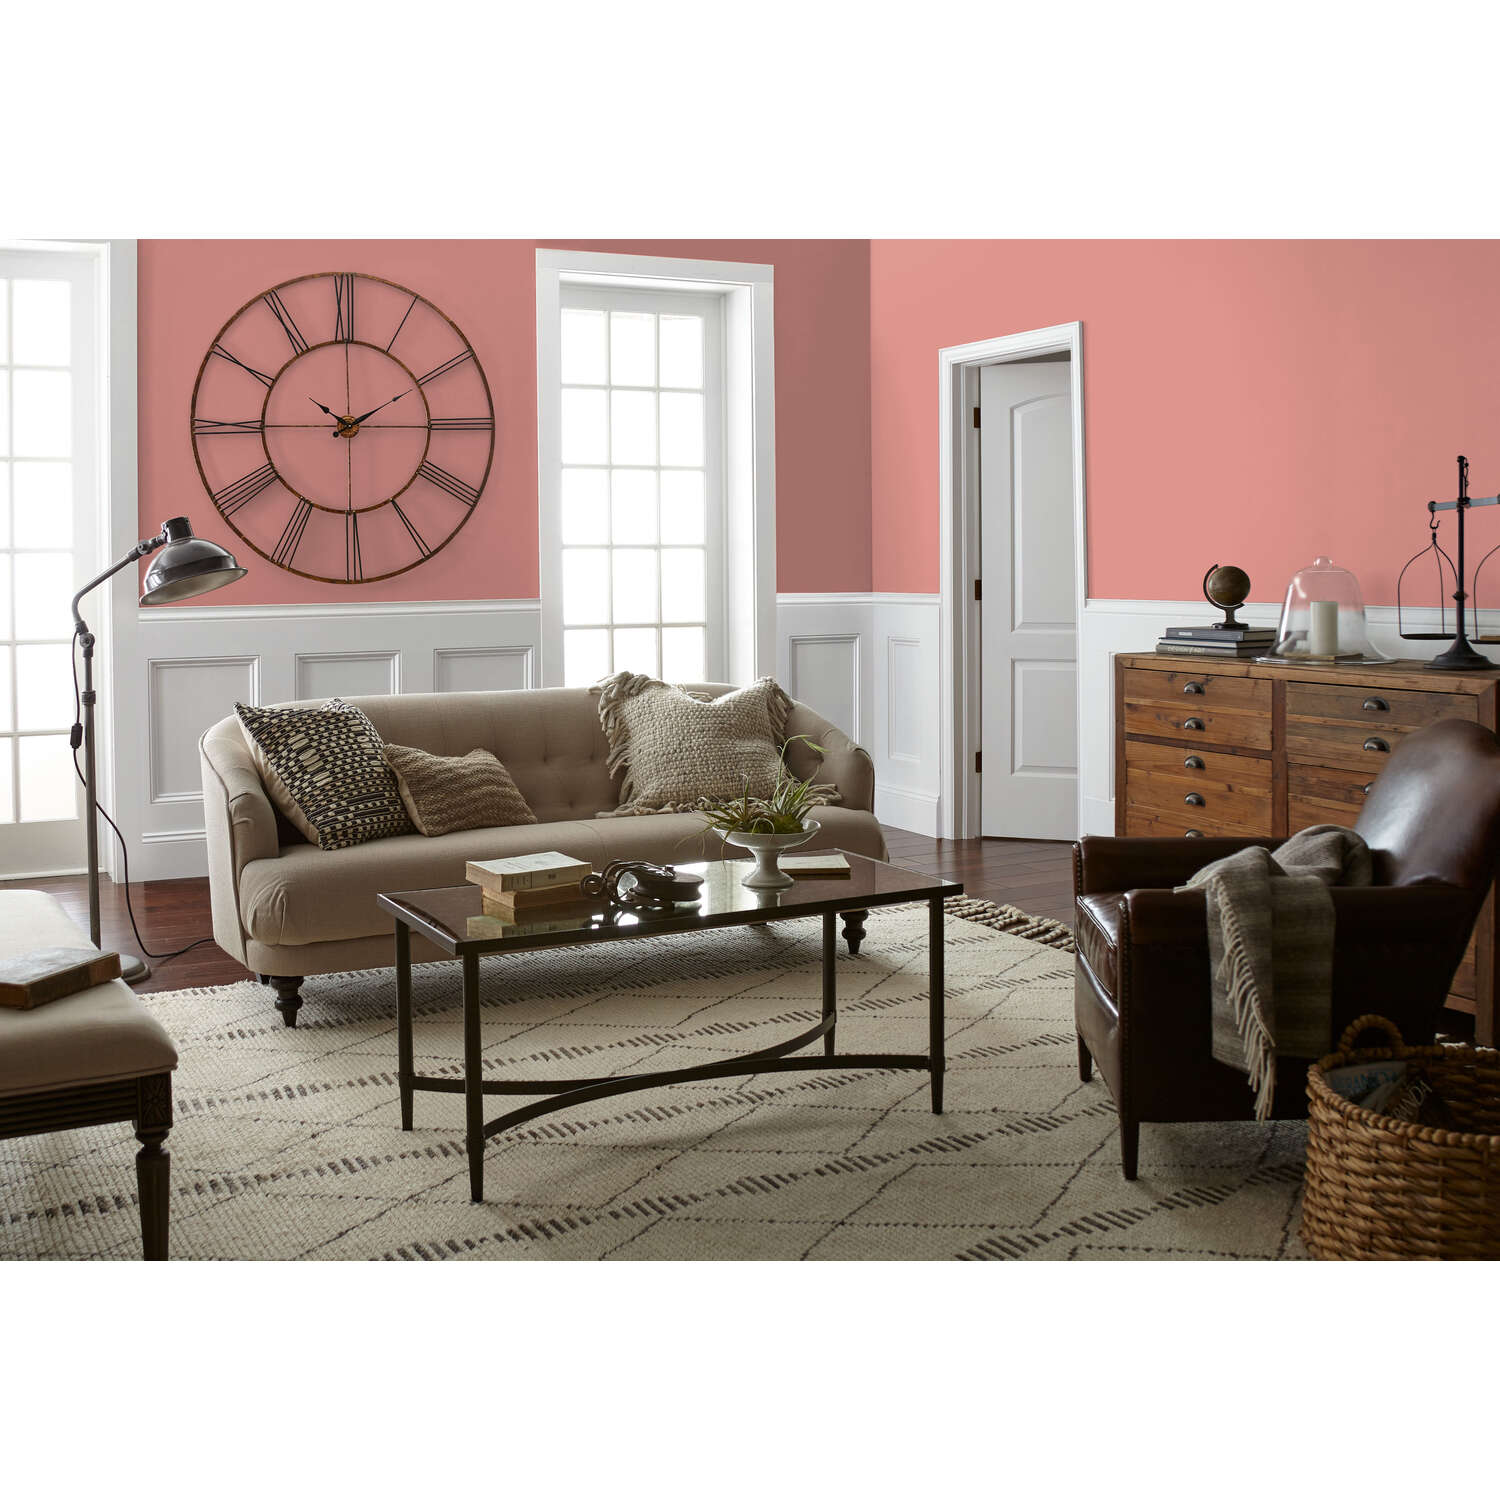 Magnolia Home  by Joanna Gaines  Pink Lemonade  Acrylic  Paint  1 gal. Matte